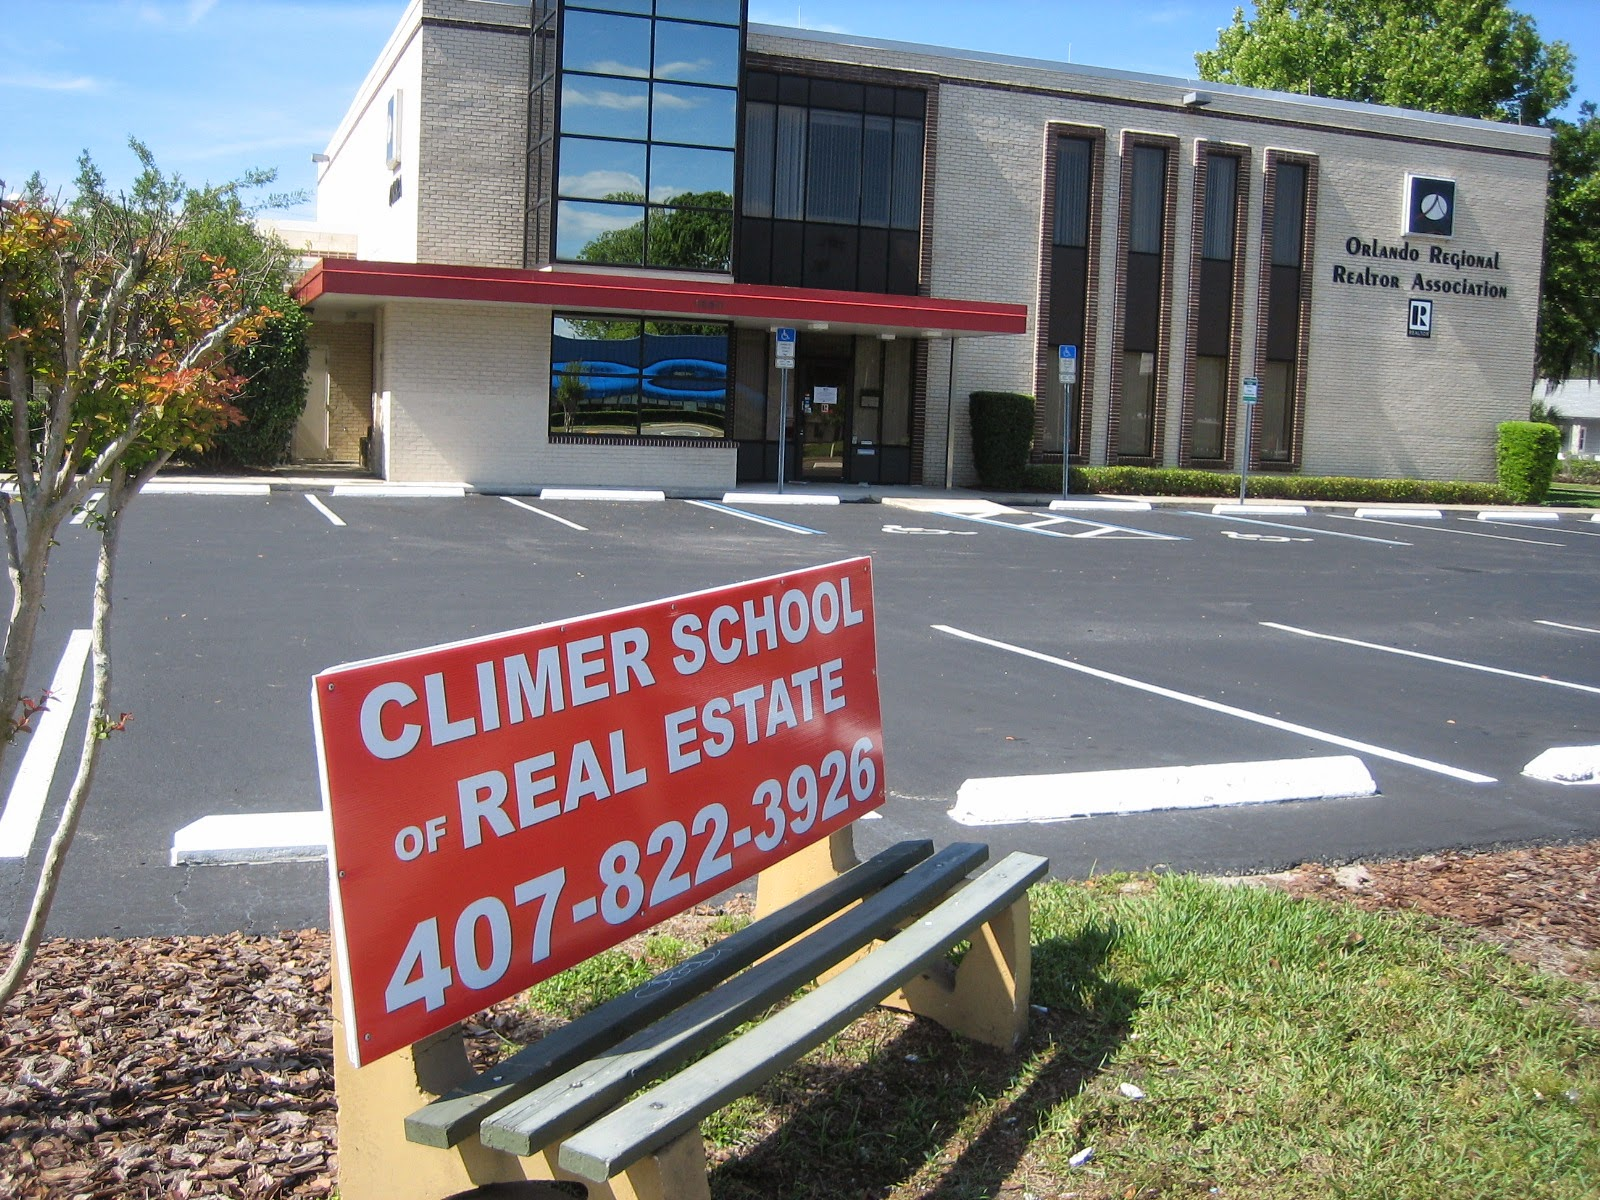 The Best of Andy Brown and The Climer School of Real Estate ...